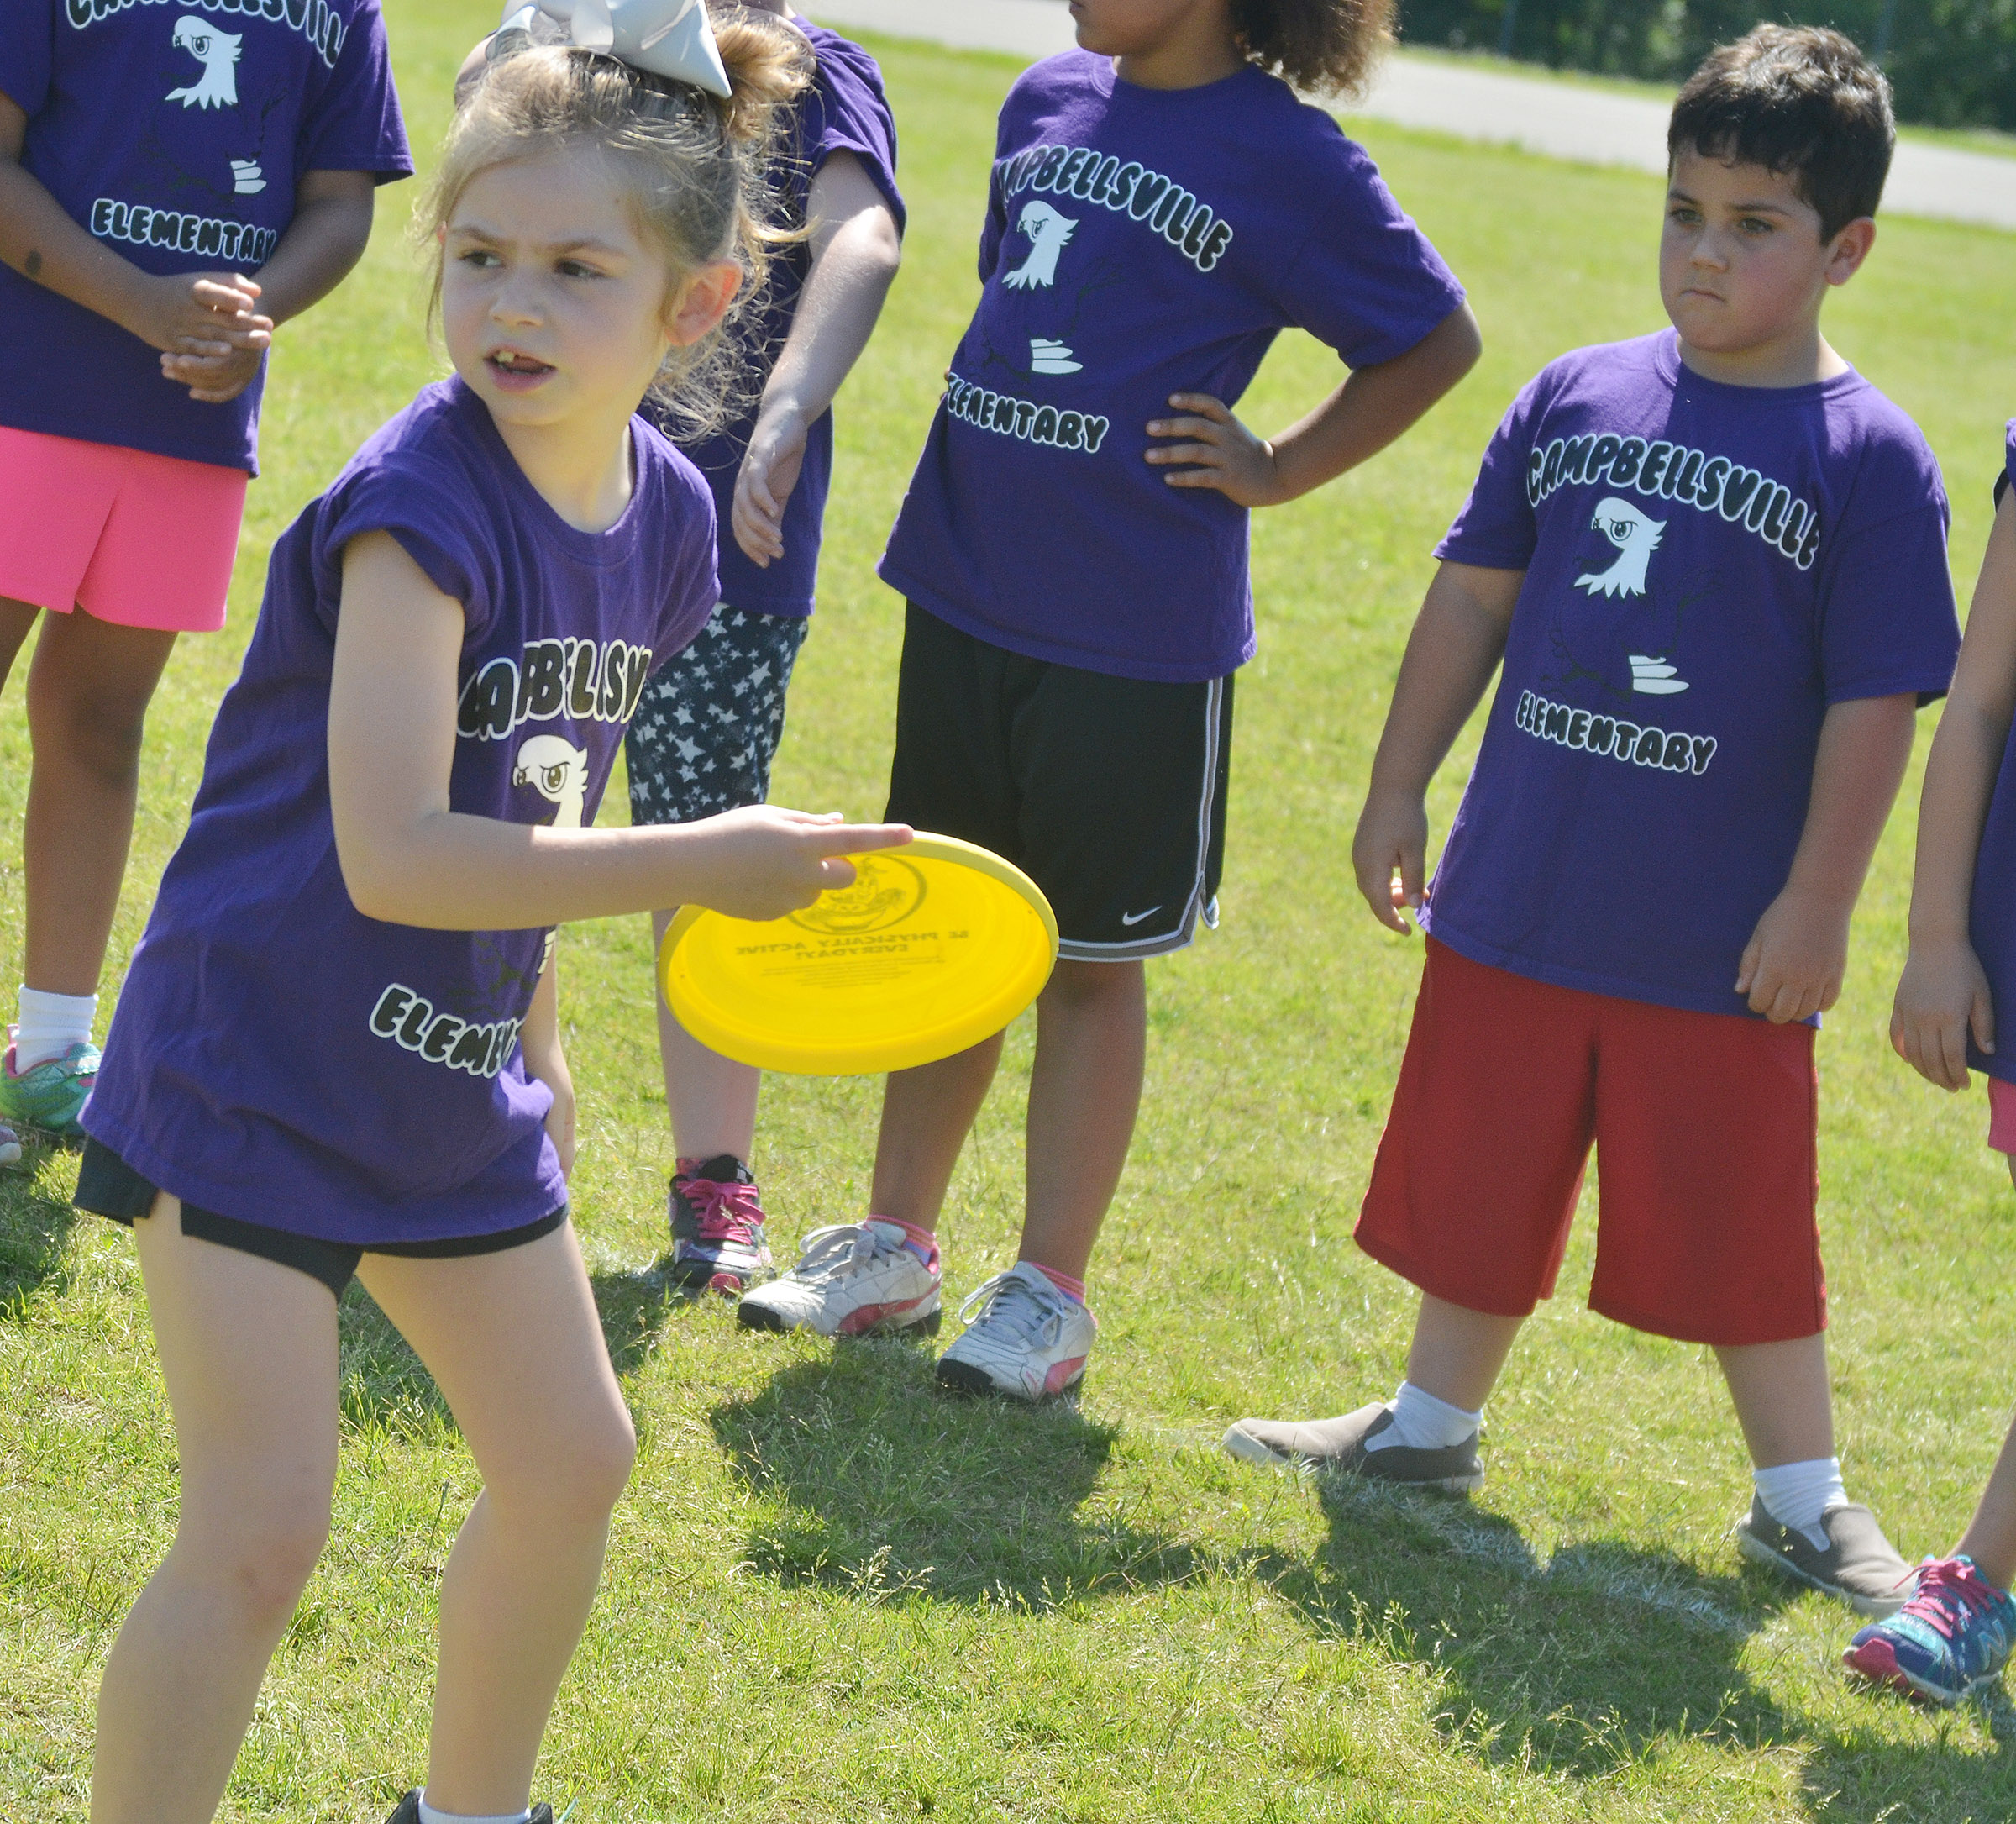 CES first-grader Lainey Price throws a Frisbee.